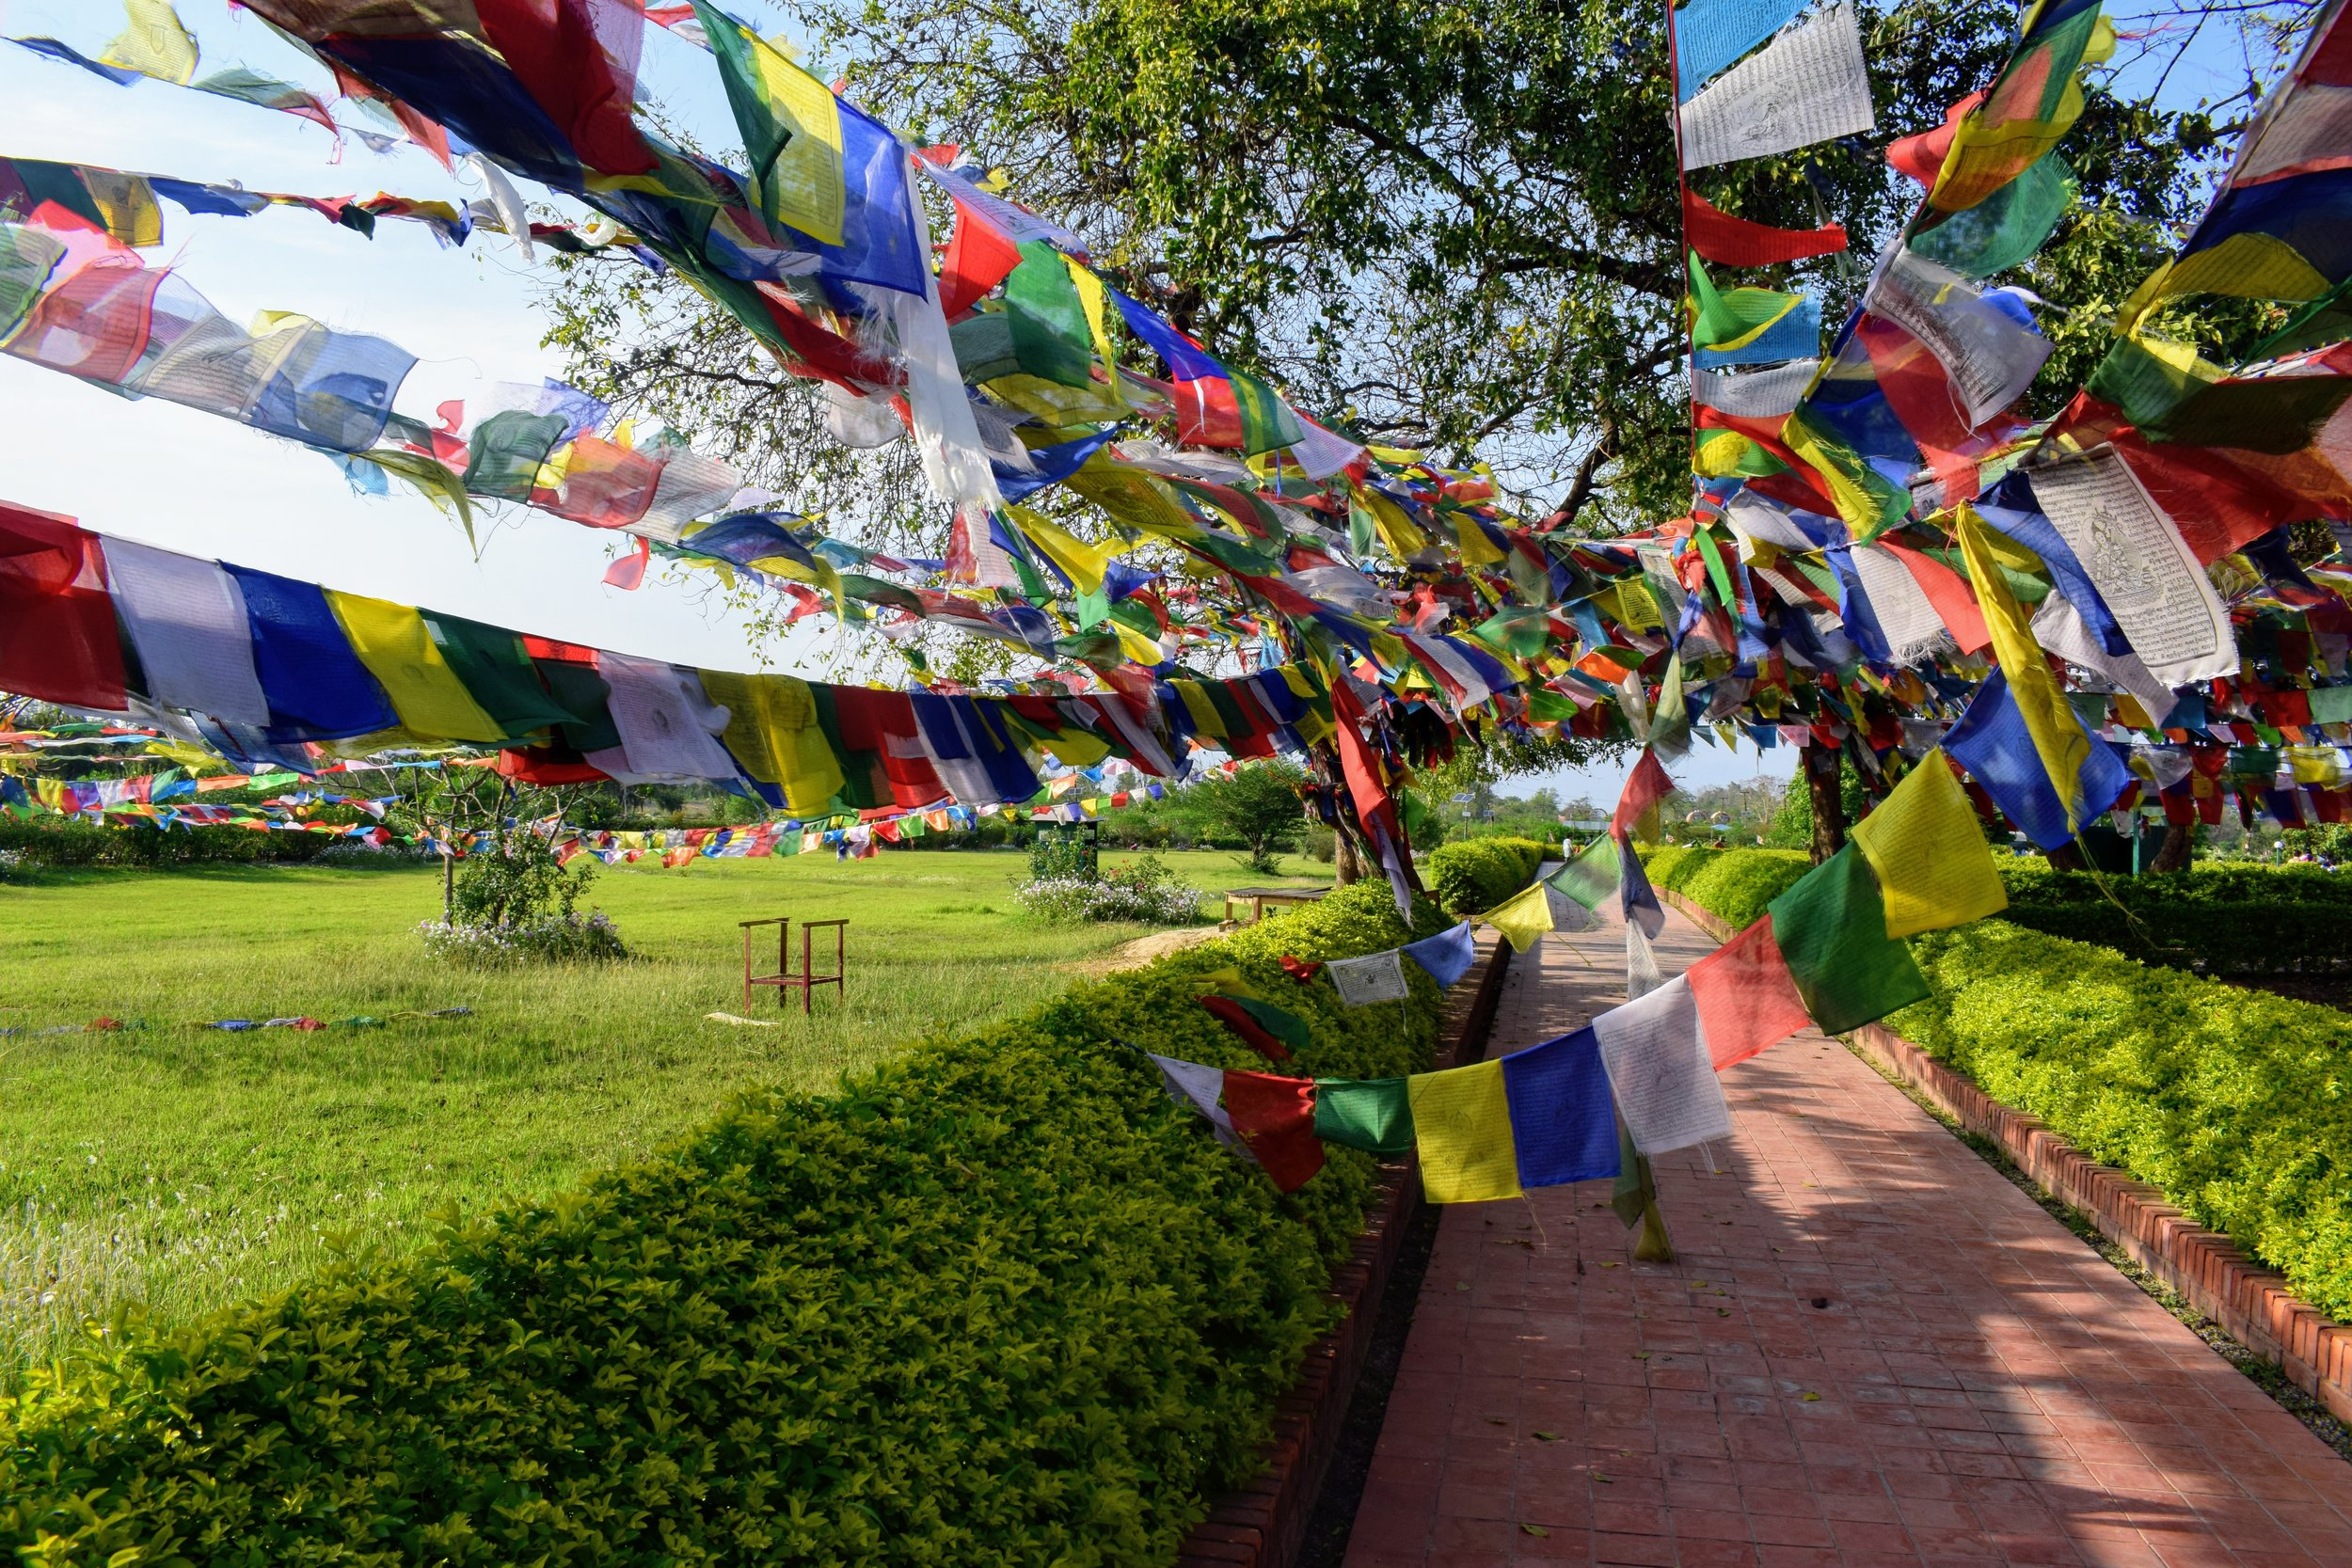 Prayer flags flutter in the warm breeze near the Buddha's birthplace in Lumbini.